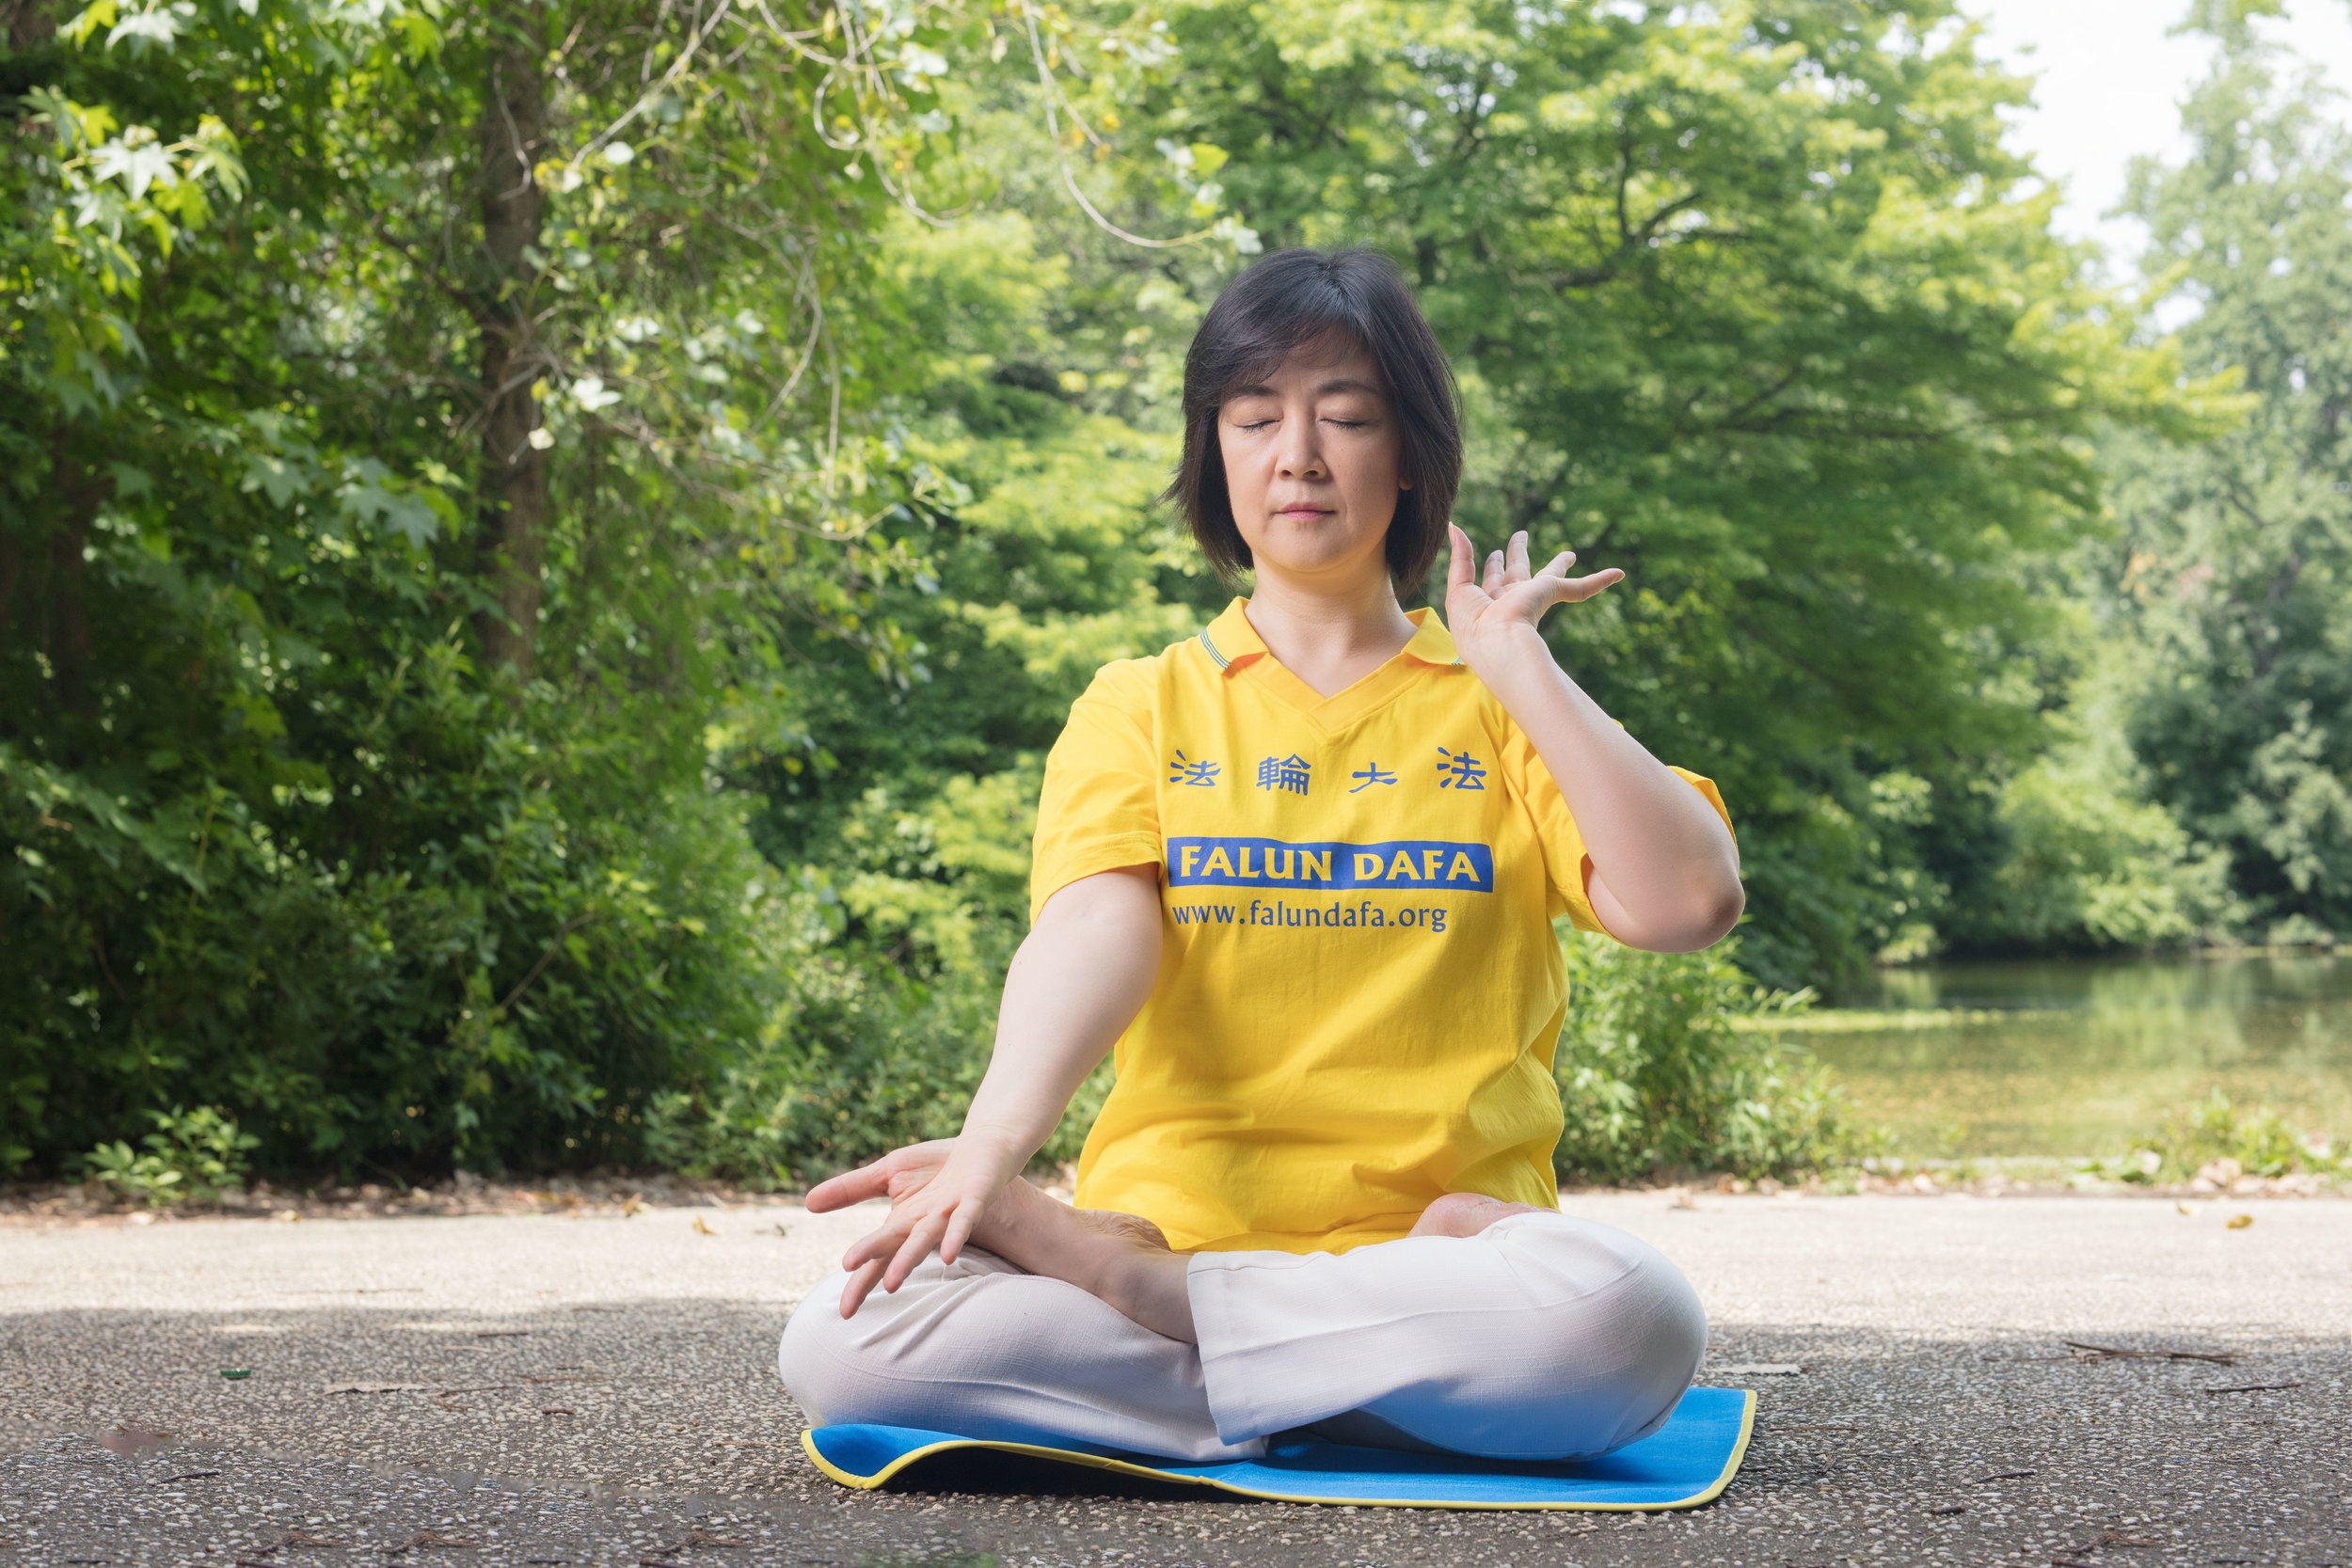 Jennifer practicing Reinforcing Supernatural Powers , the 5th exercise of Falun Dafa (also known as Falun Gong) in Prospect Park, New York, on June 29, 2017  2017年6月29日,曾錚在紐約展望公園煉 法輪功 第五套功法, 「神通加持法」   Photo credit: Benny Zhang Studio   攝影: 張炳乾